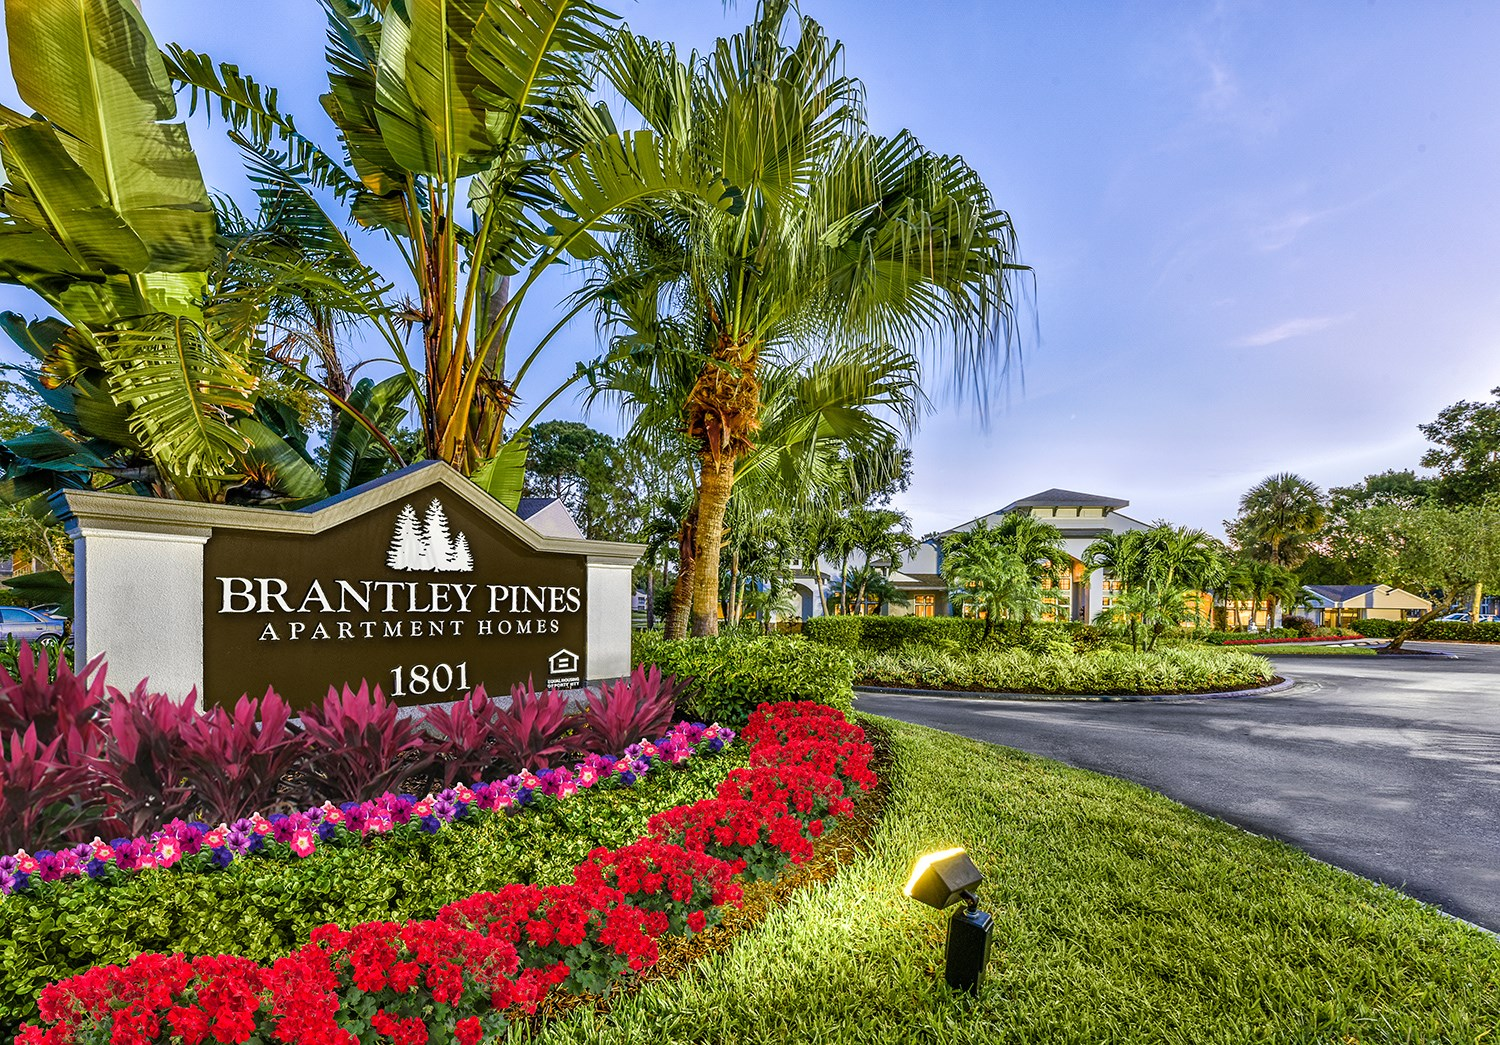 Entry Sign at Brantley Pines Apartments in Ft. Myers, FL